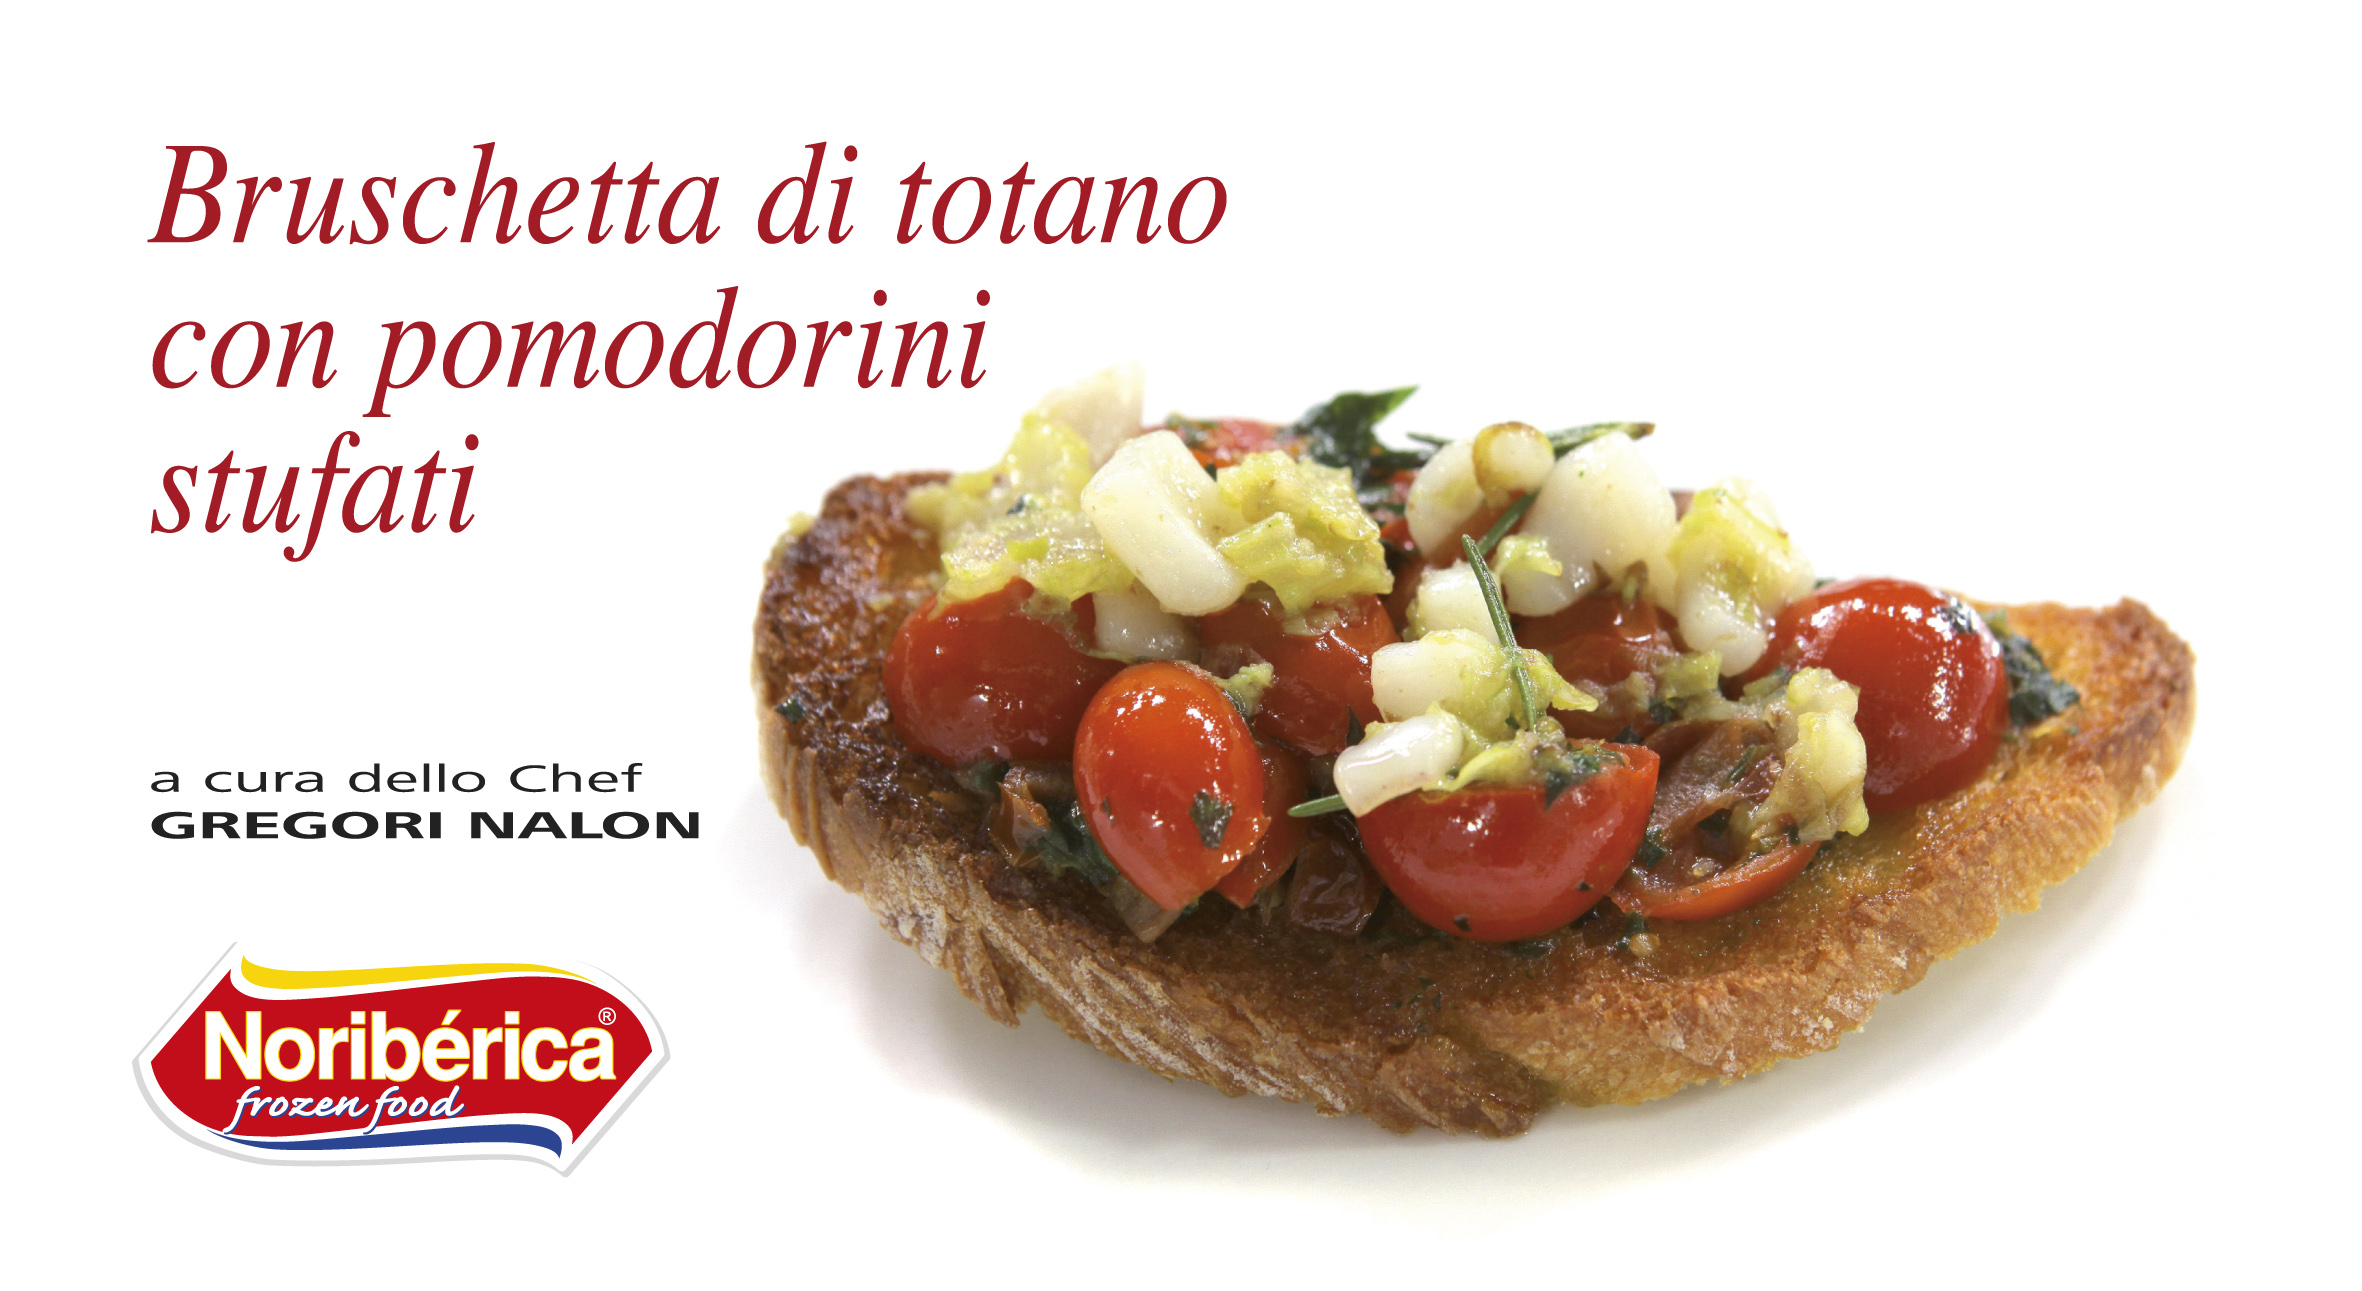 bruschetta di totano